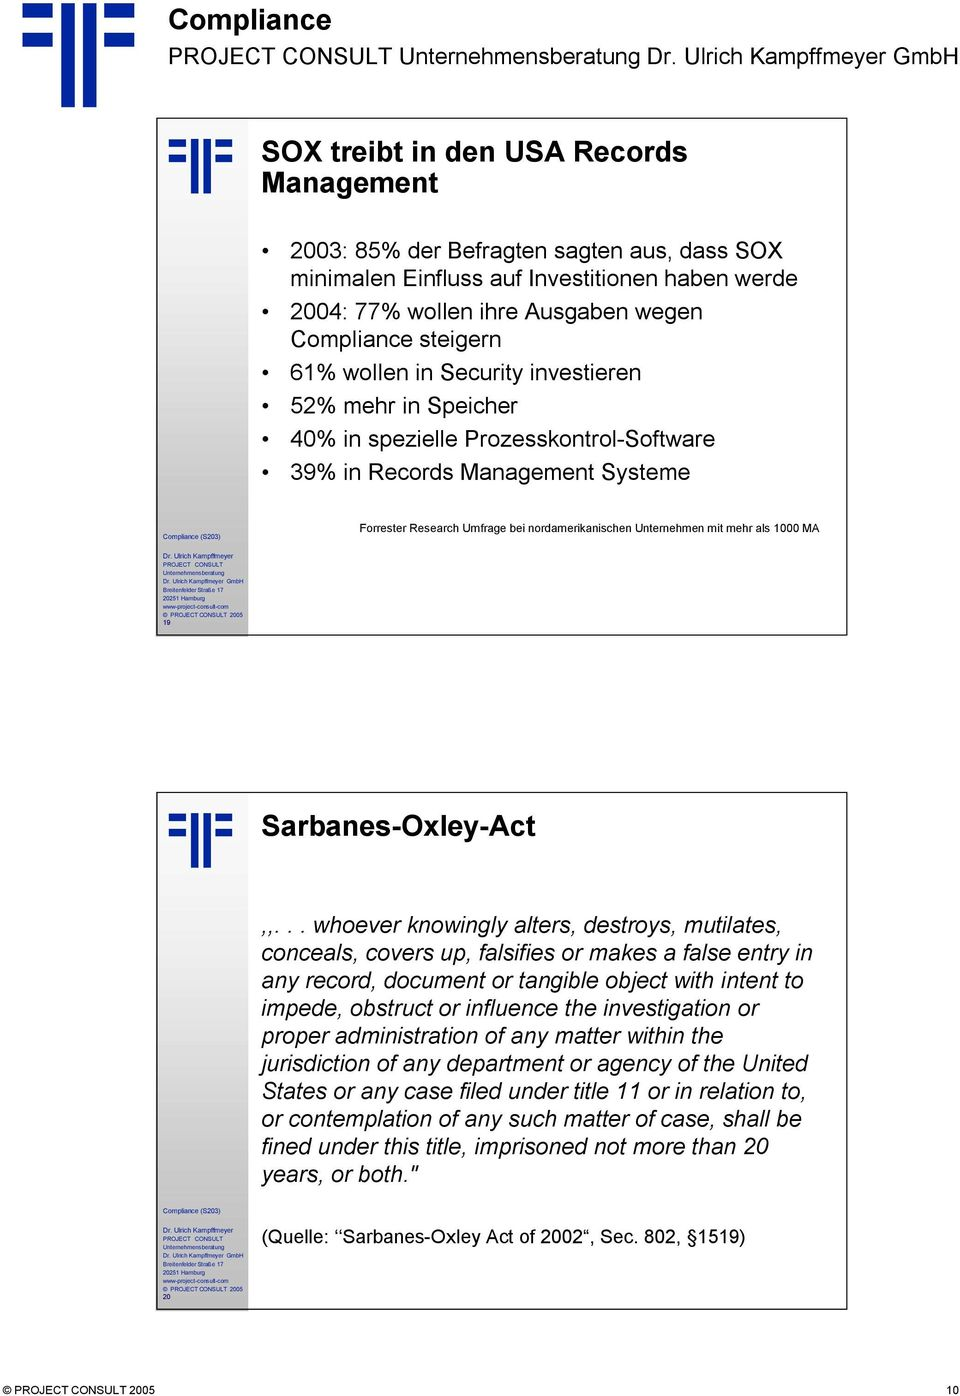 mehr als 1000 MA GmbH 19 Sarbanes-Oxley-Act,,.